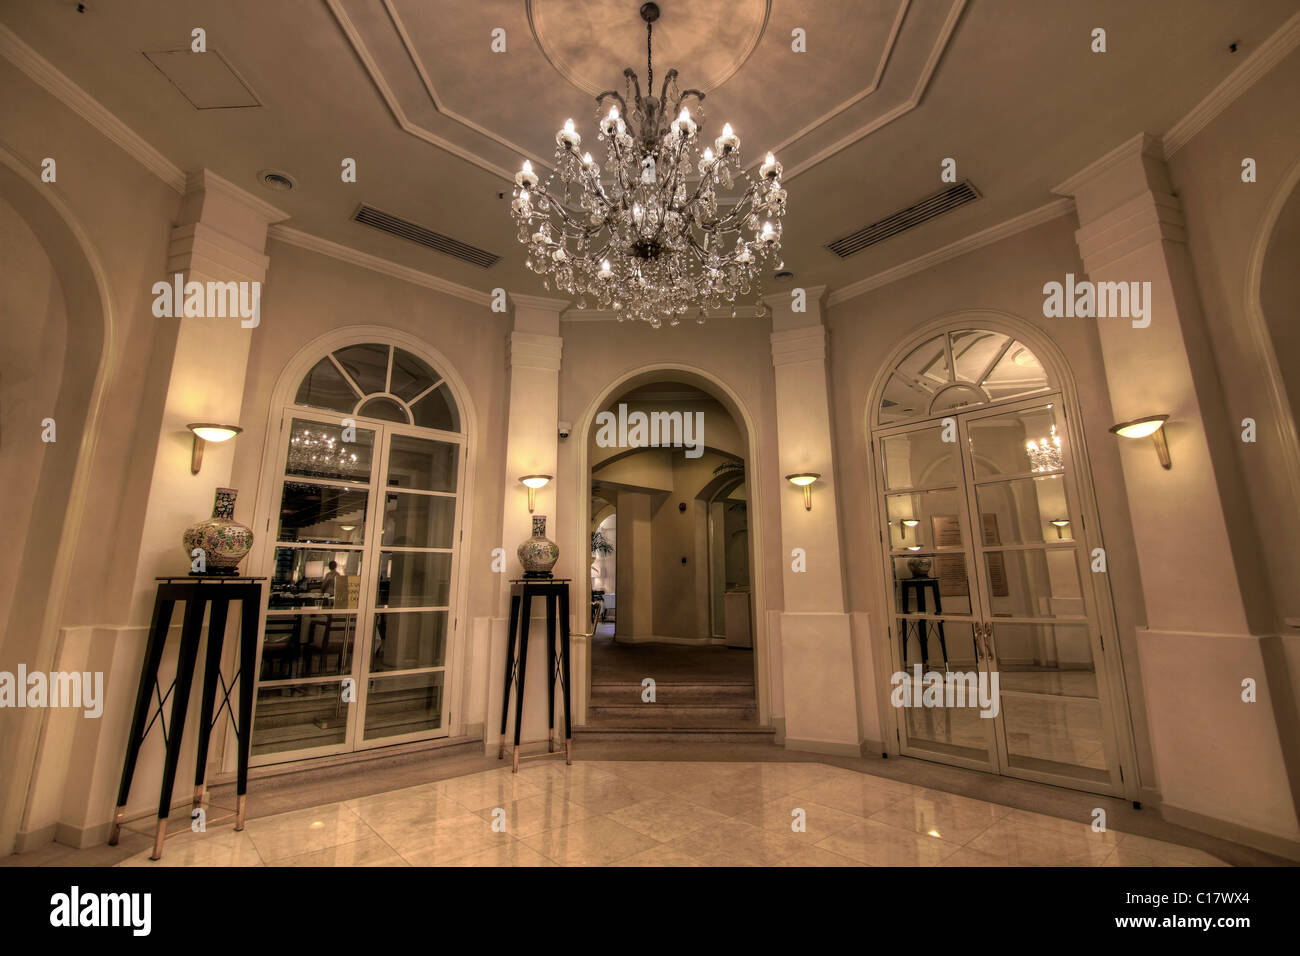 Grand lobby foyer with crystal chandelier stock photo 35209388 alamy grand lobby foyer with crystal chandelier aloadofball Images